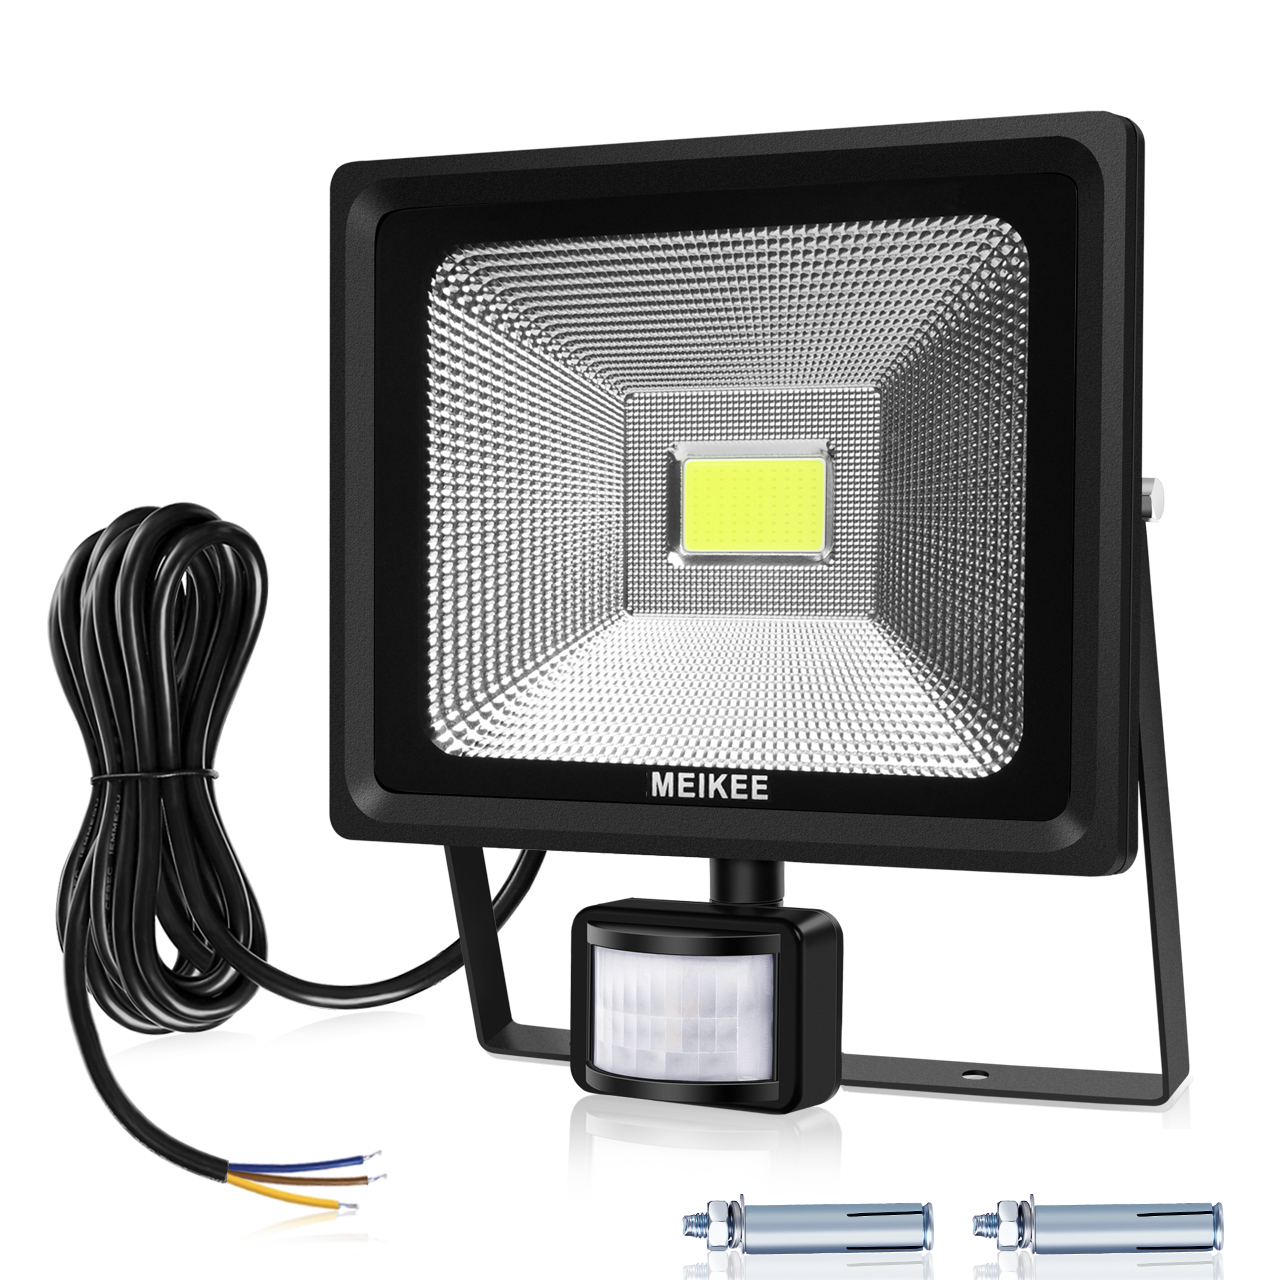 30W Security Lights with Motion Sensor